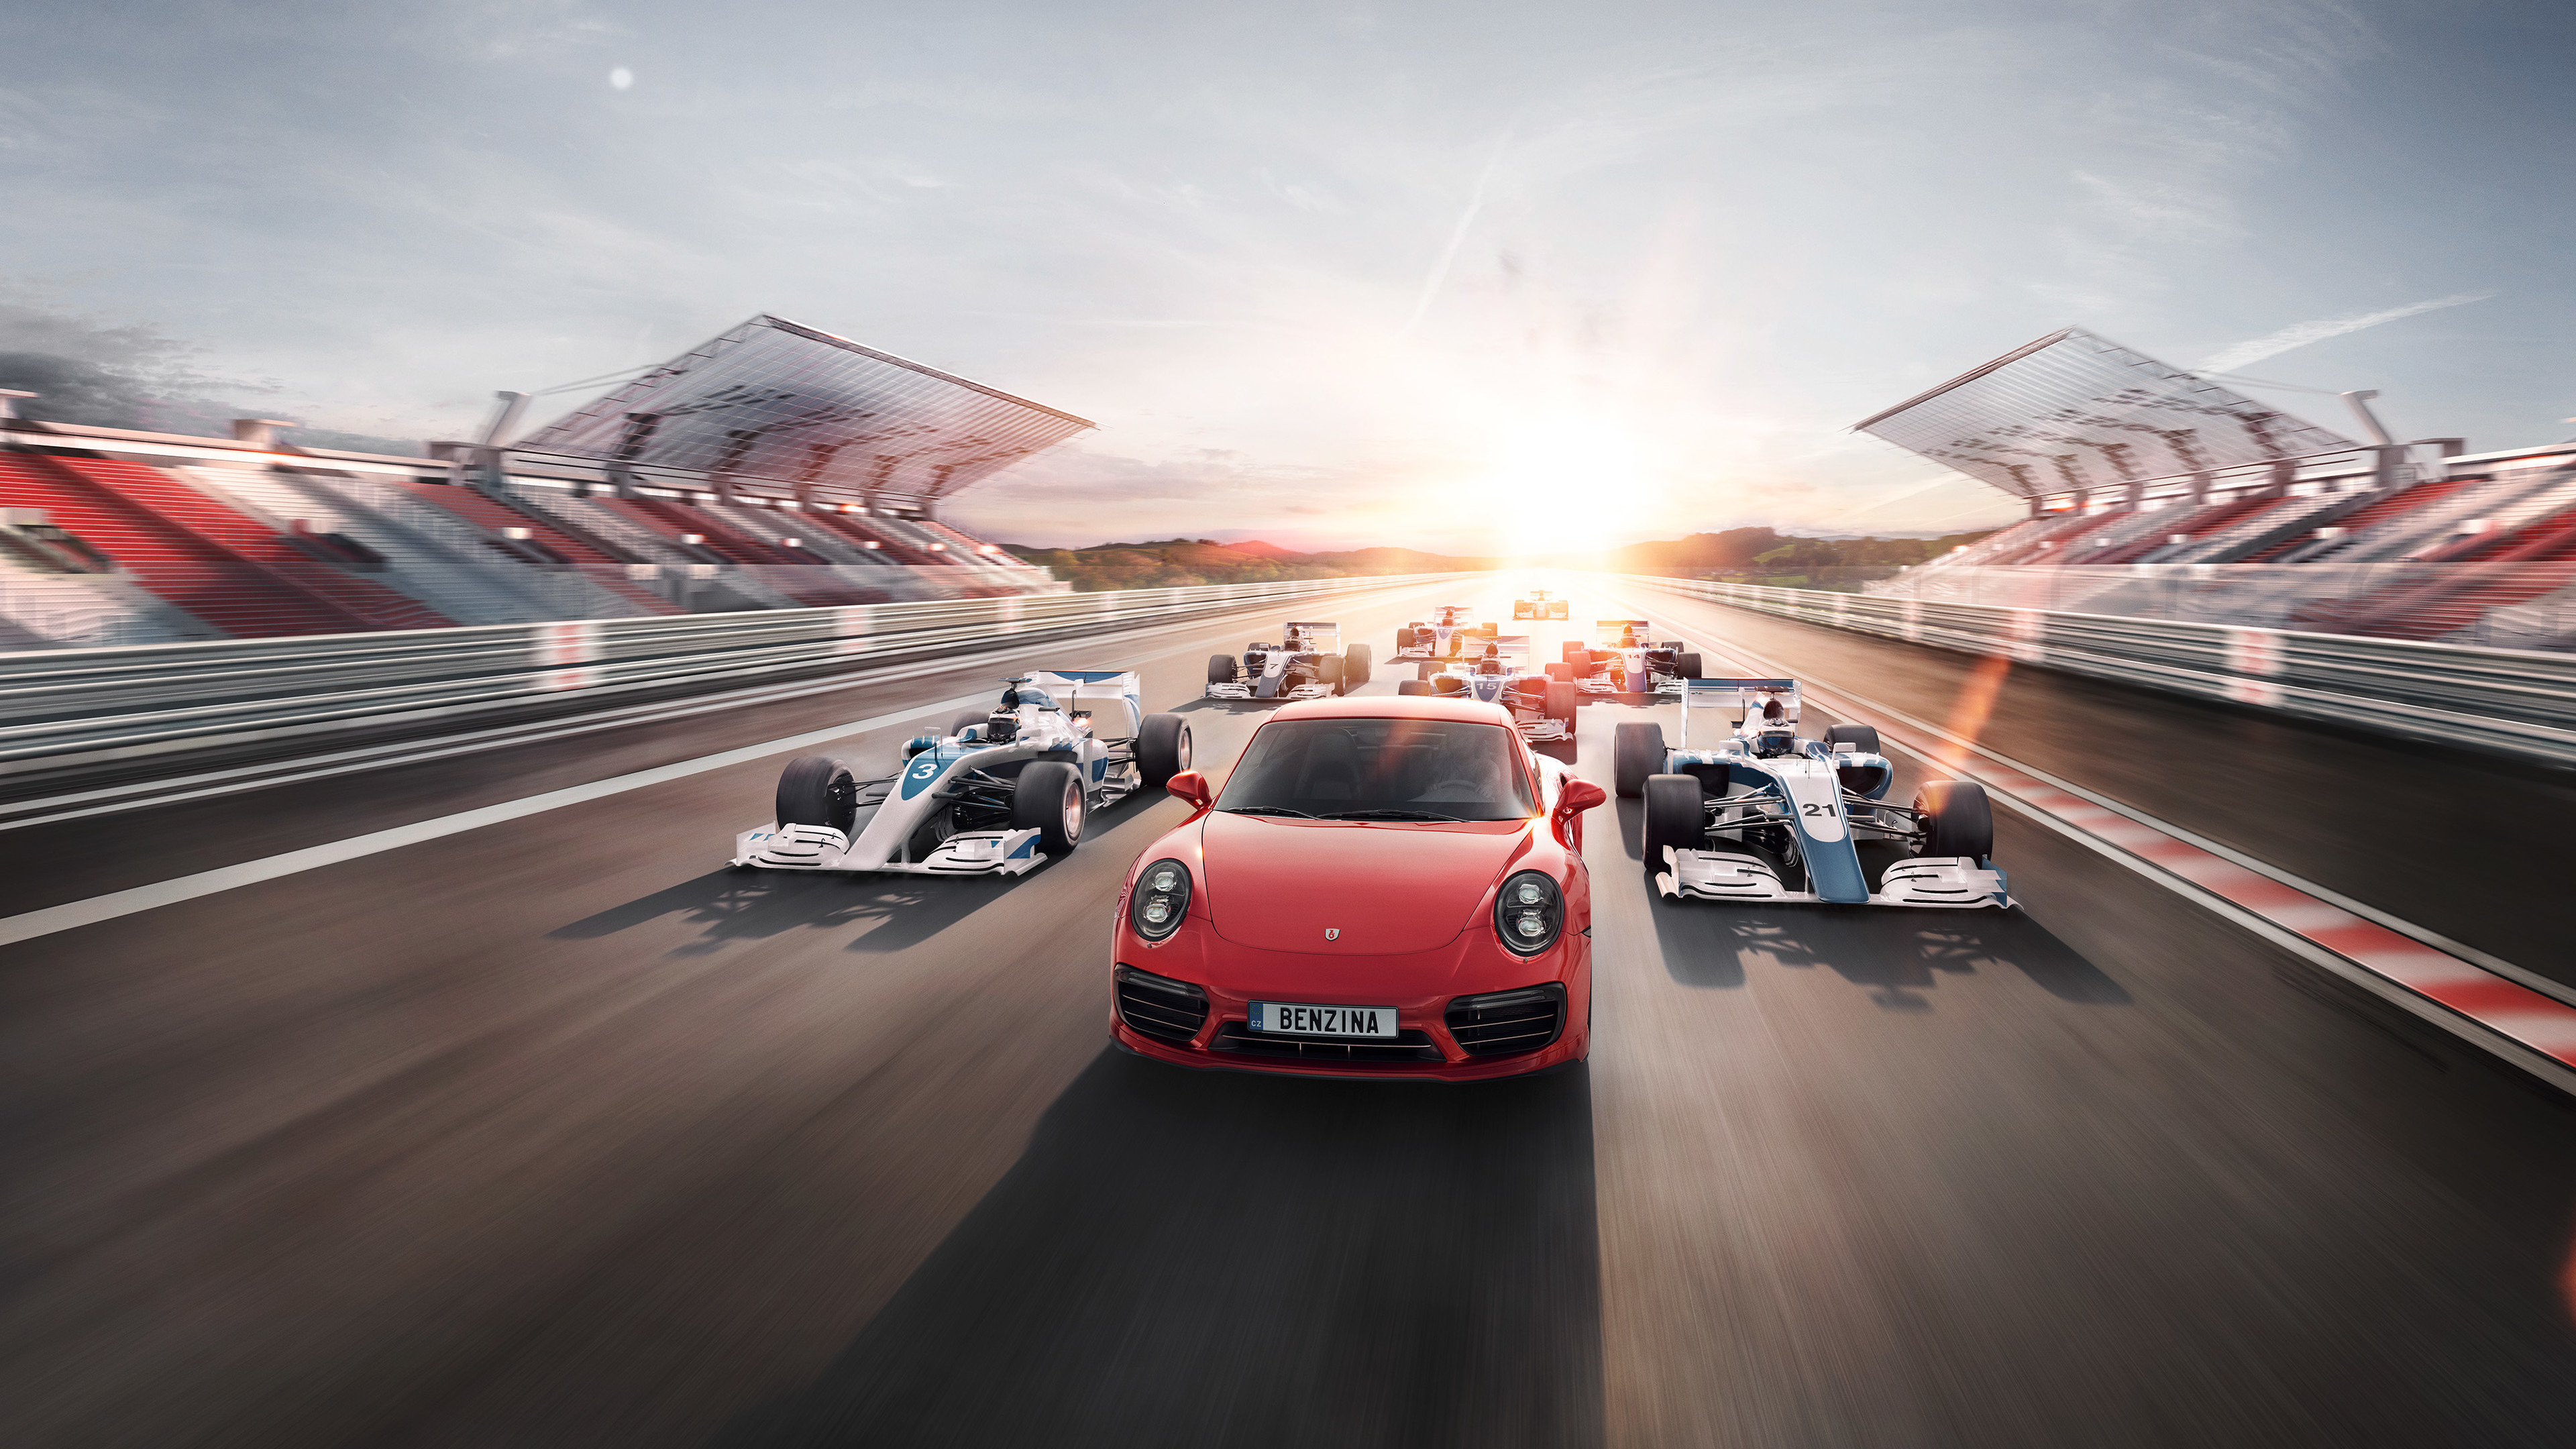 porsche and f1 car 1569188467 - Porsche And F1 Car - porsche wallpapers, hd-wallpapers, cars wallpapers, behance wallpapers, 4k-wallpapers